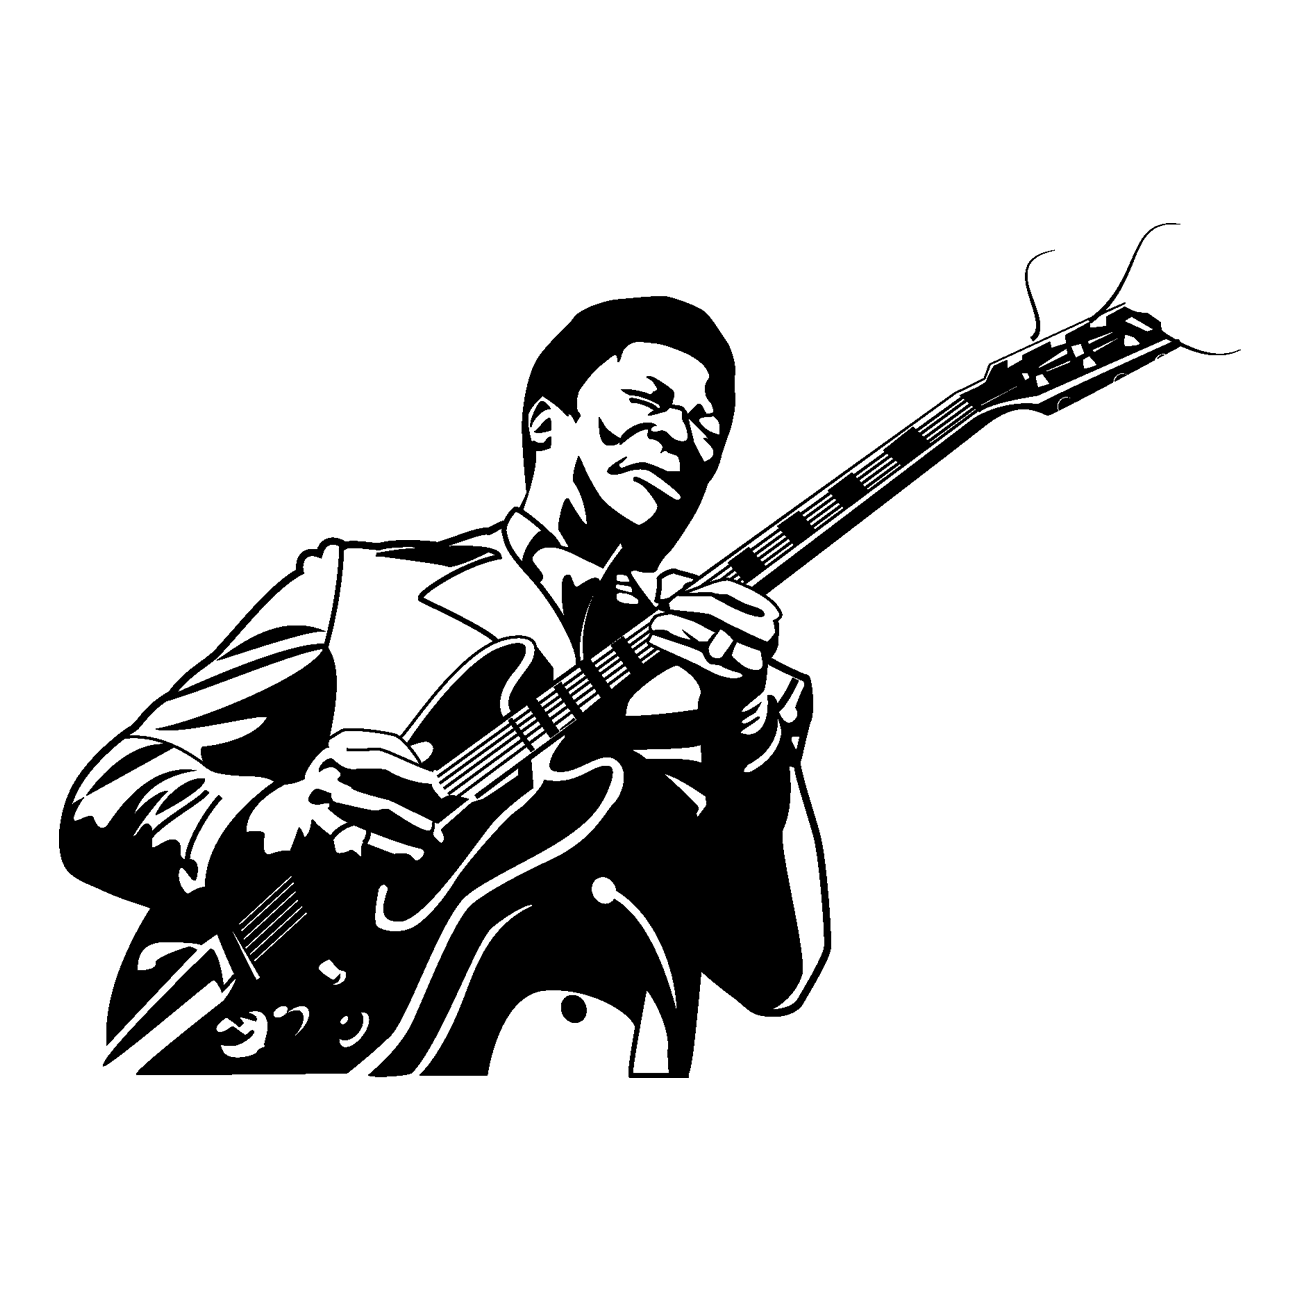 freeuse stock Musician Singer Blues Drawing